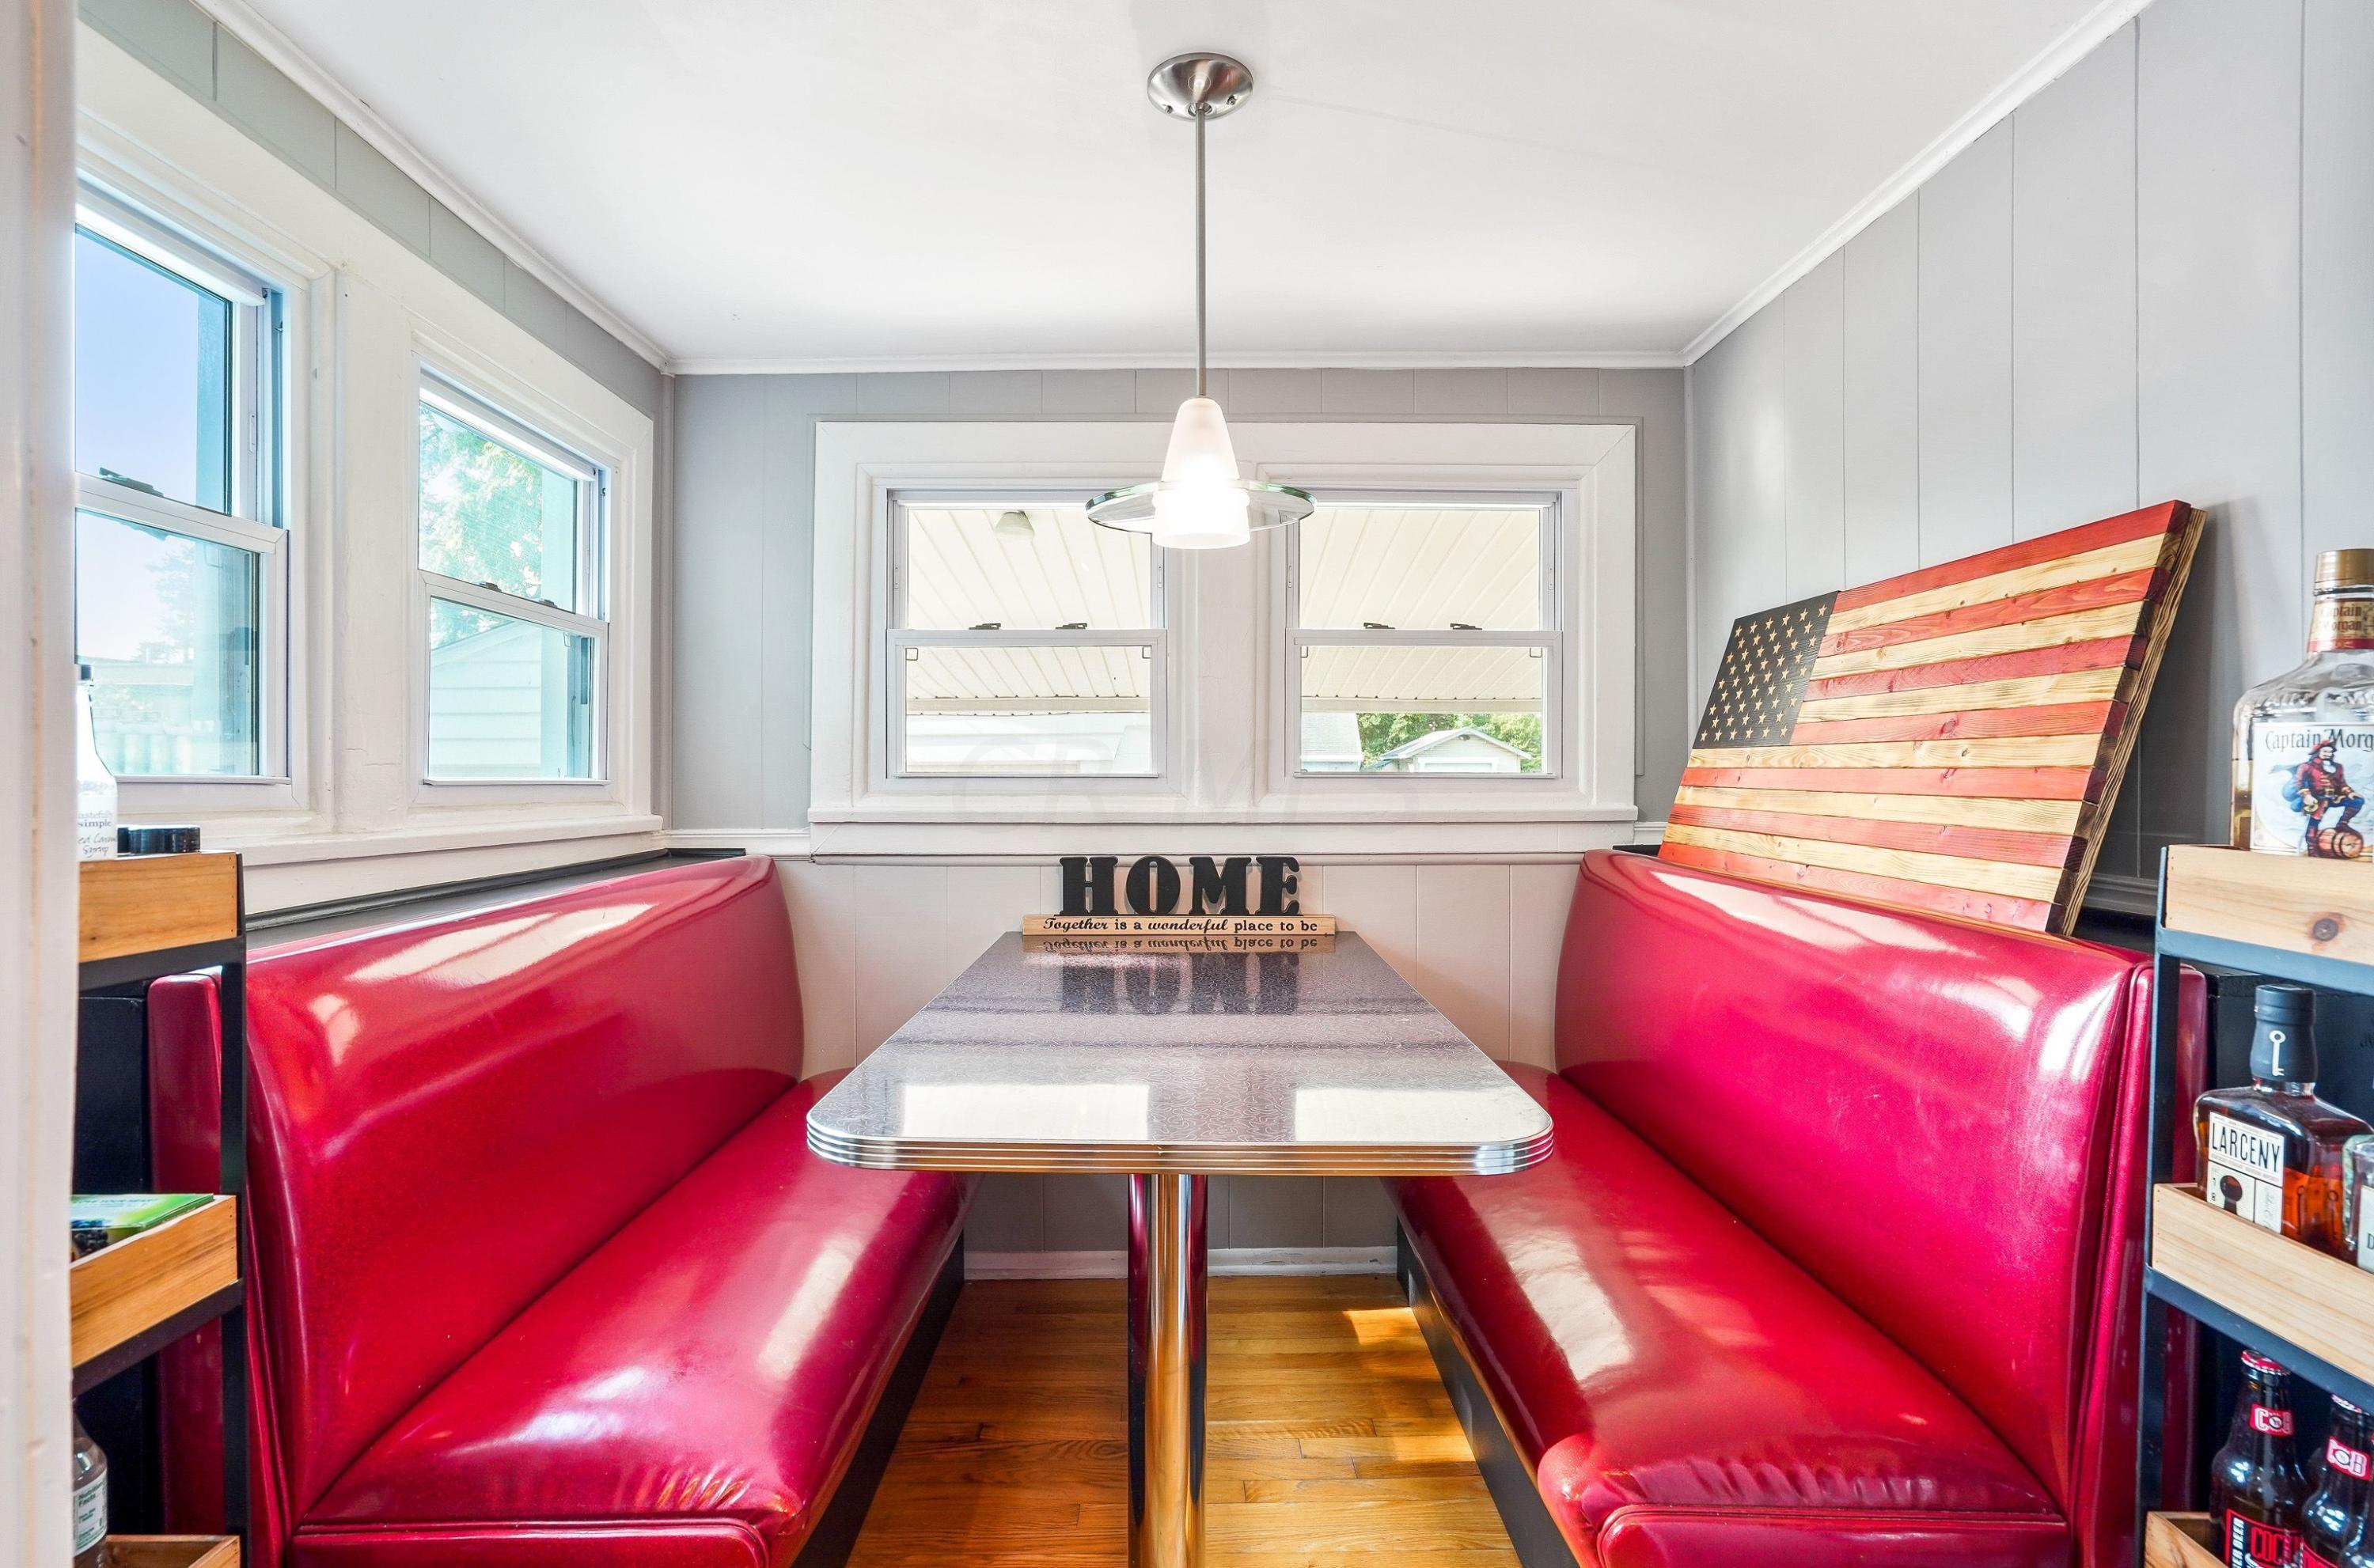 921 Chambers - diner booth